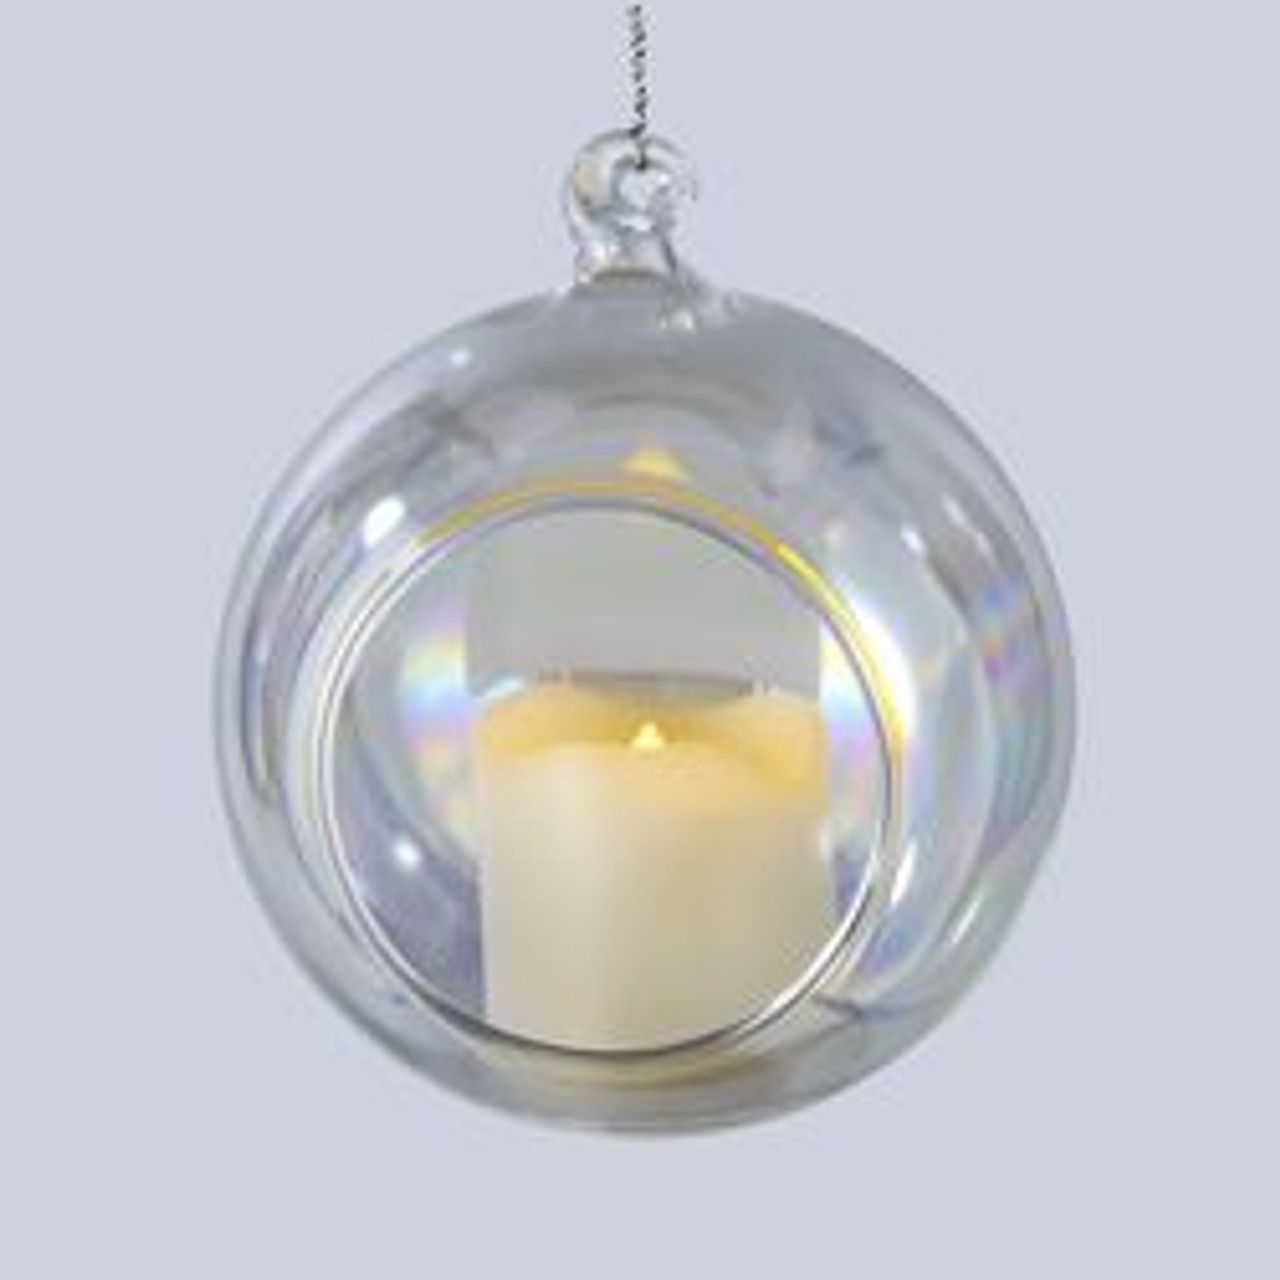 Pack Of 6 Battery Operated Votive Candles In Iridescent Glass Ball Christmas Ornaments 3 5 31341799